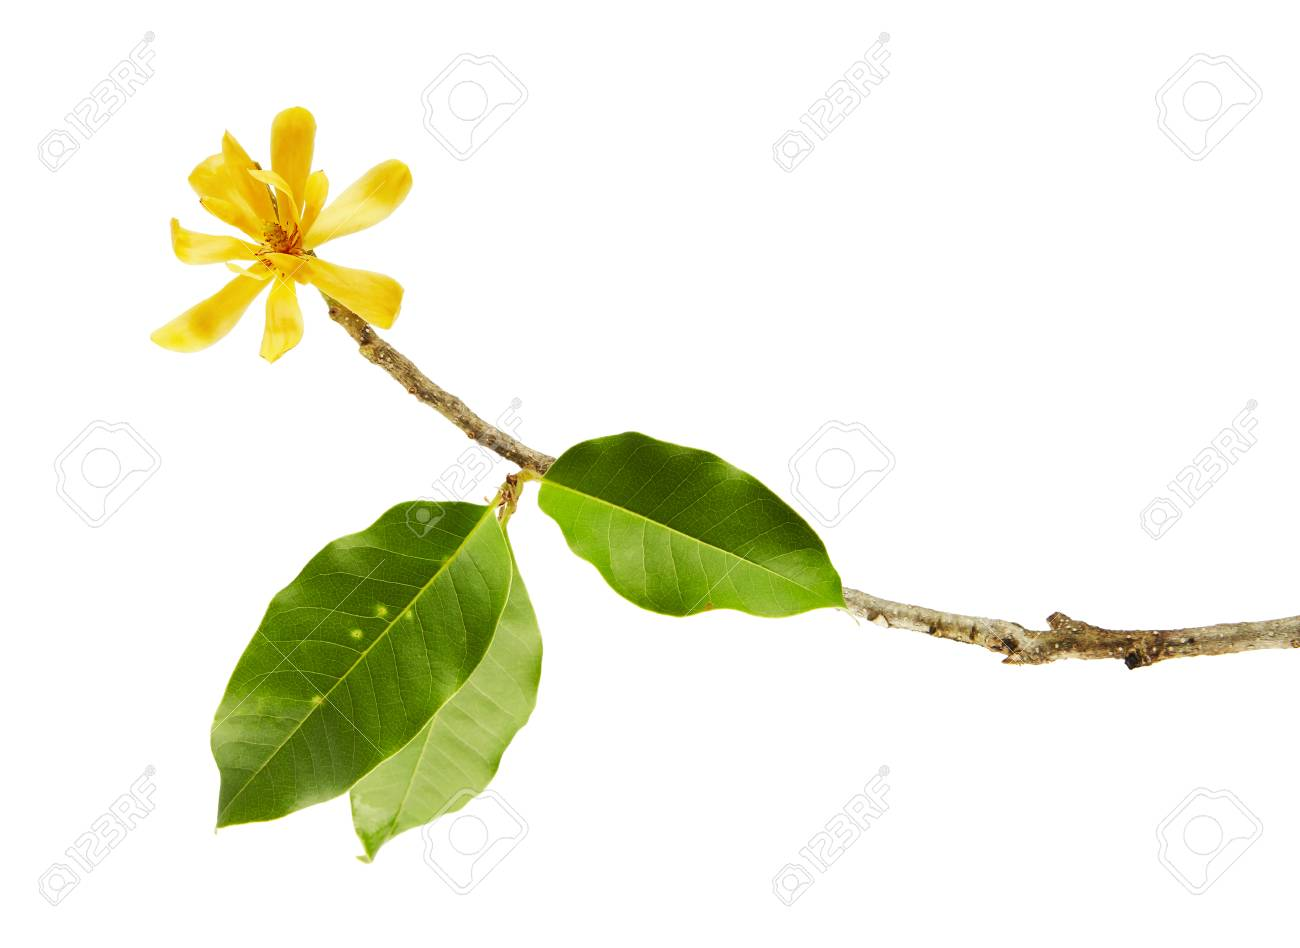 Champak flower magnolia champaca fragrant yellow flower blooming champak flower magnolia champaca fragrant yellow flower blooming on branch with green leaves isolated on white background with clipping path mightylinksfo